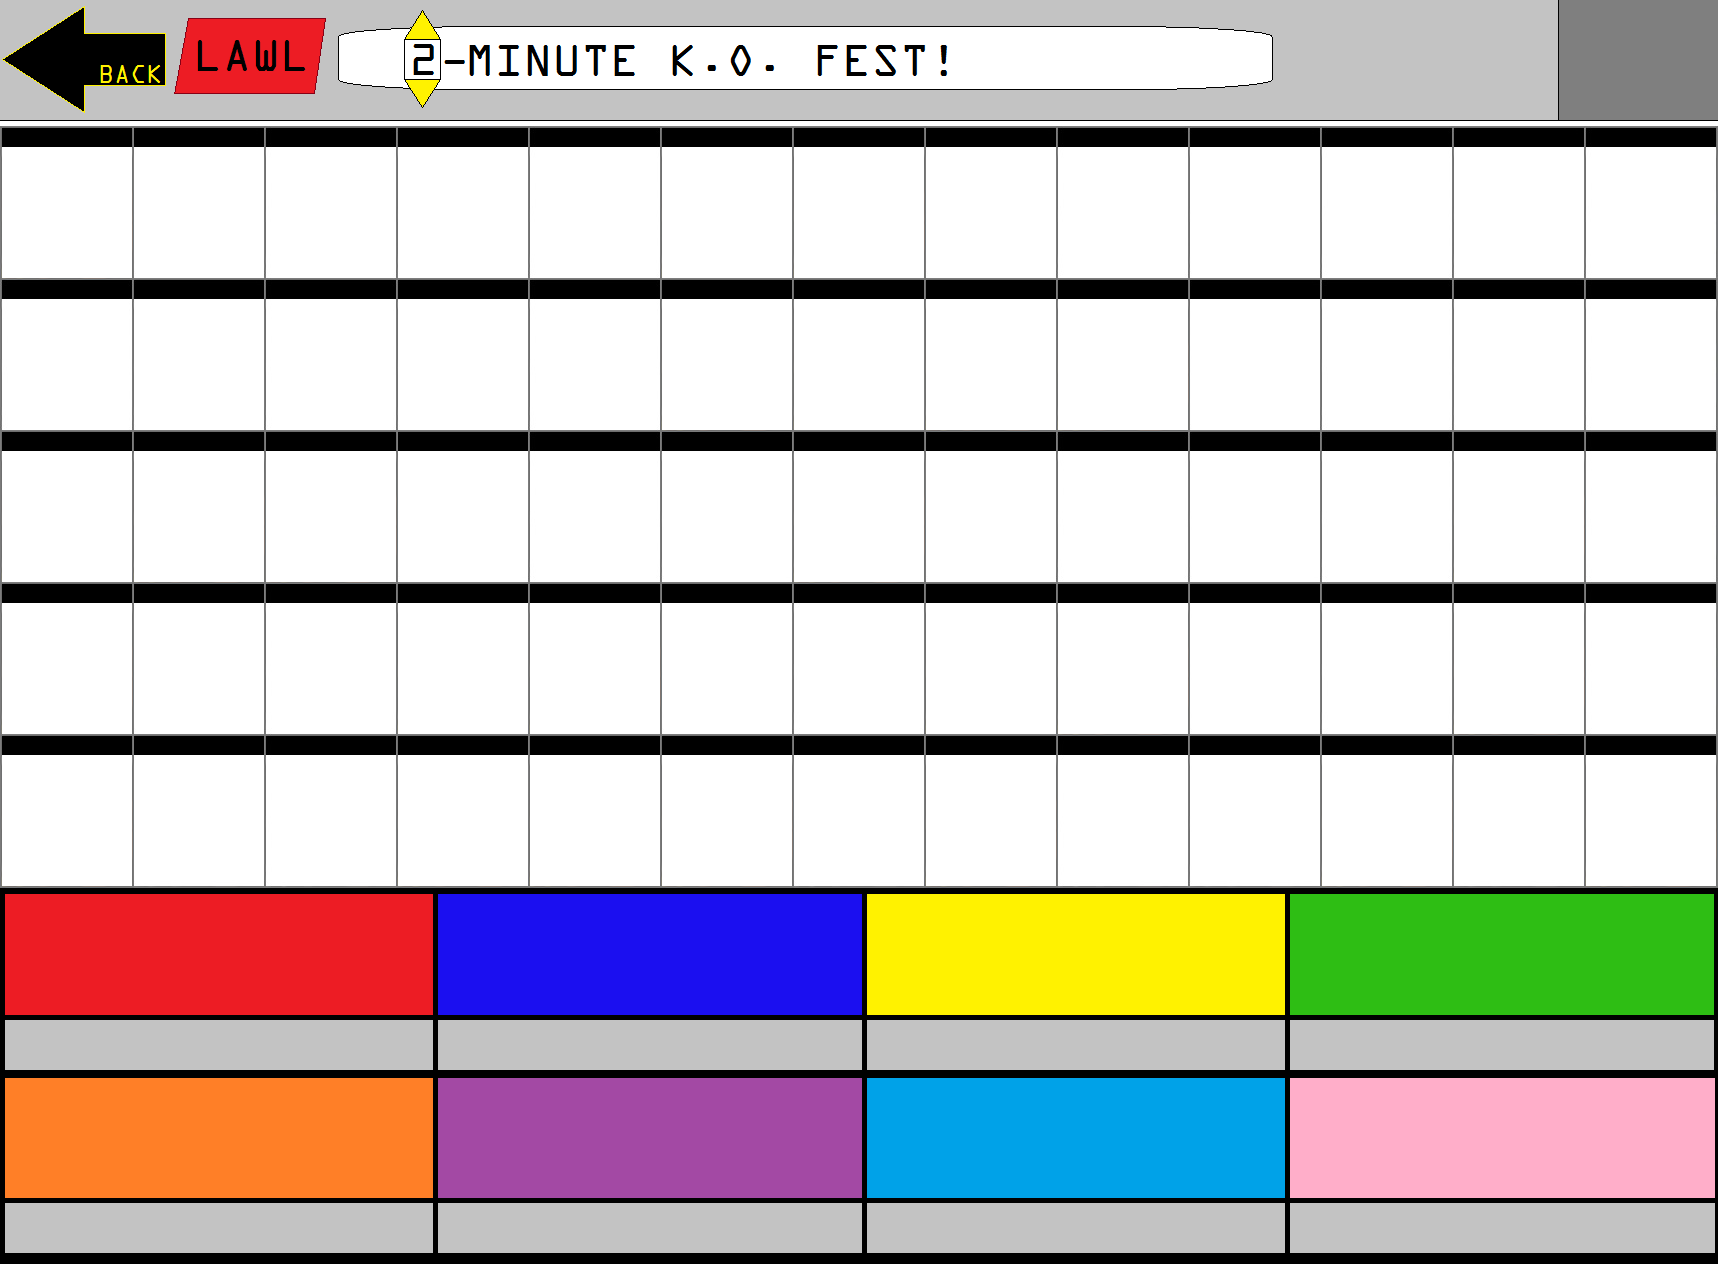 image sblg roster template png world of smash bros lawl wiki